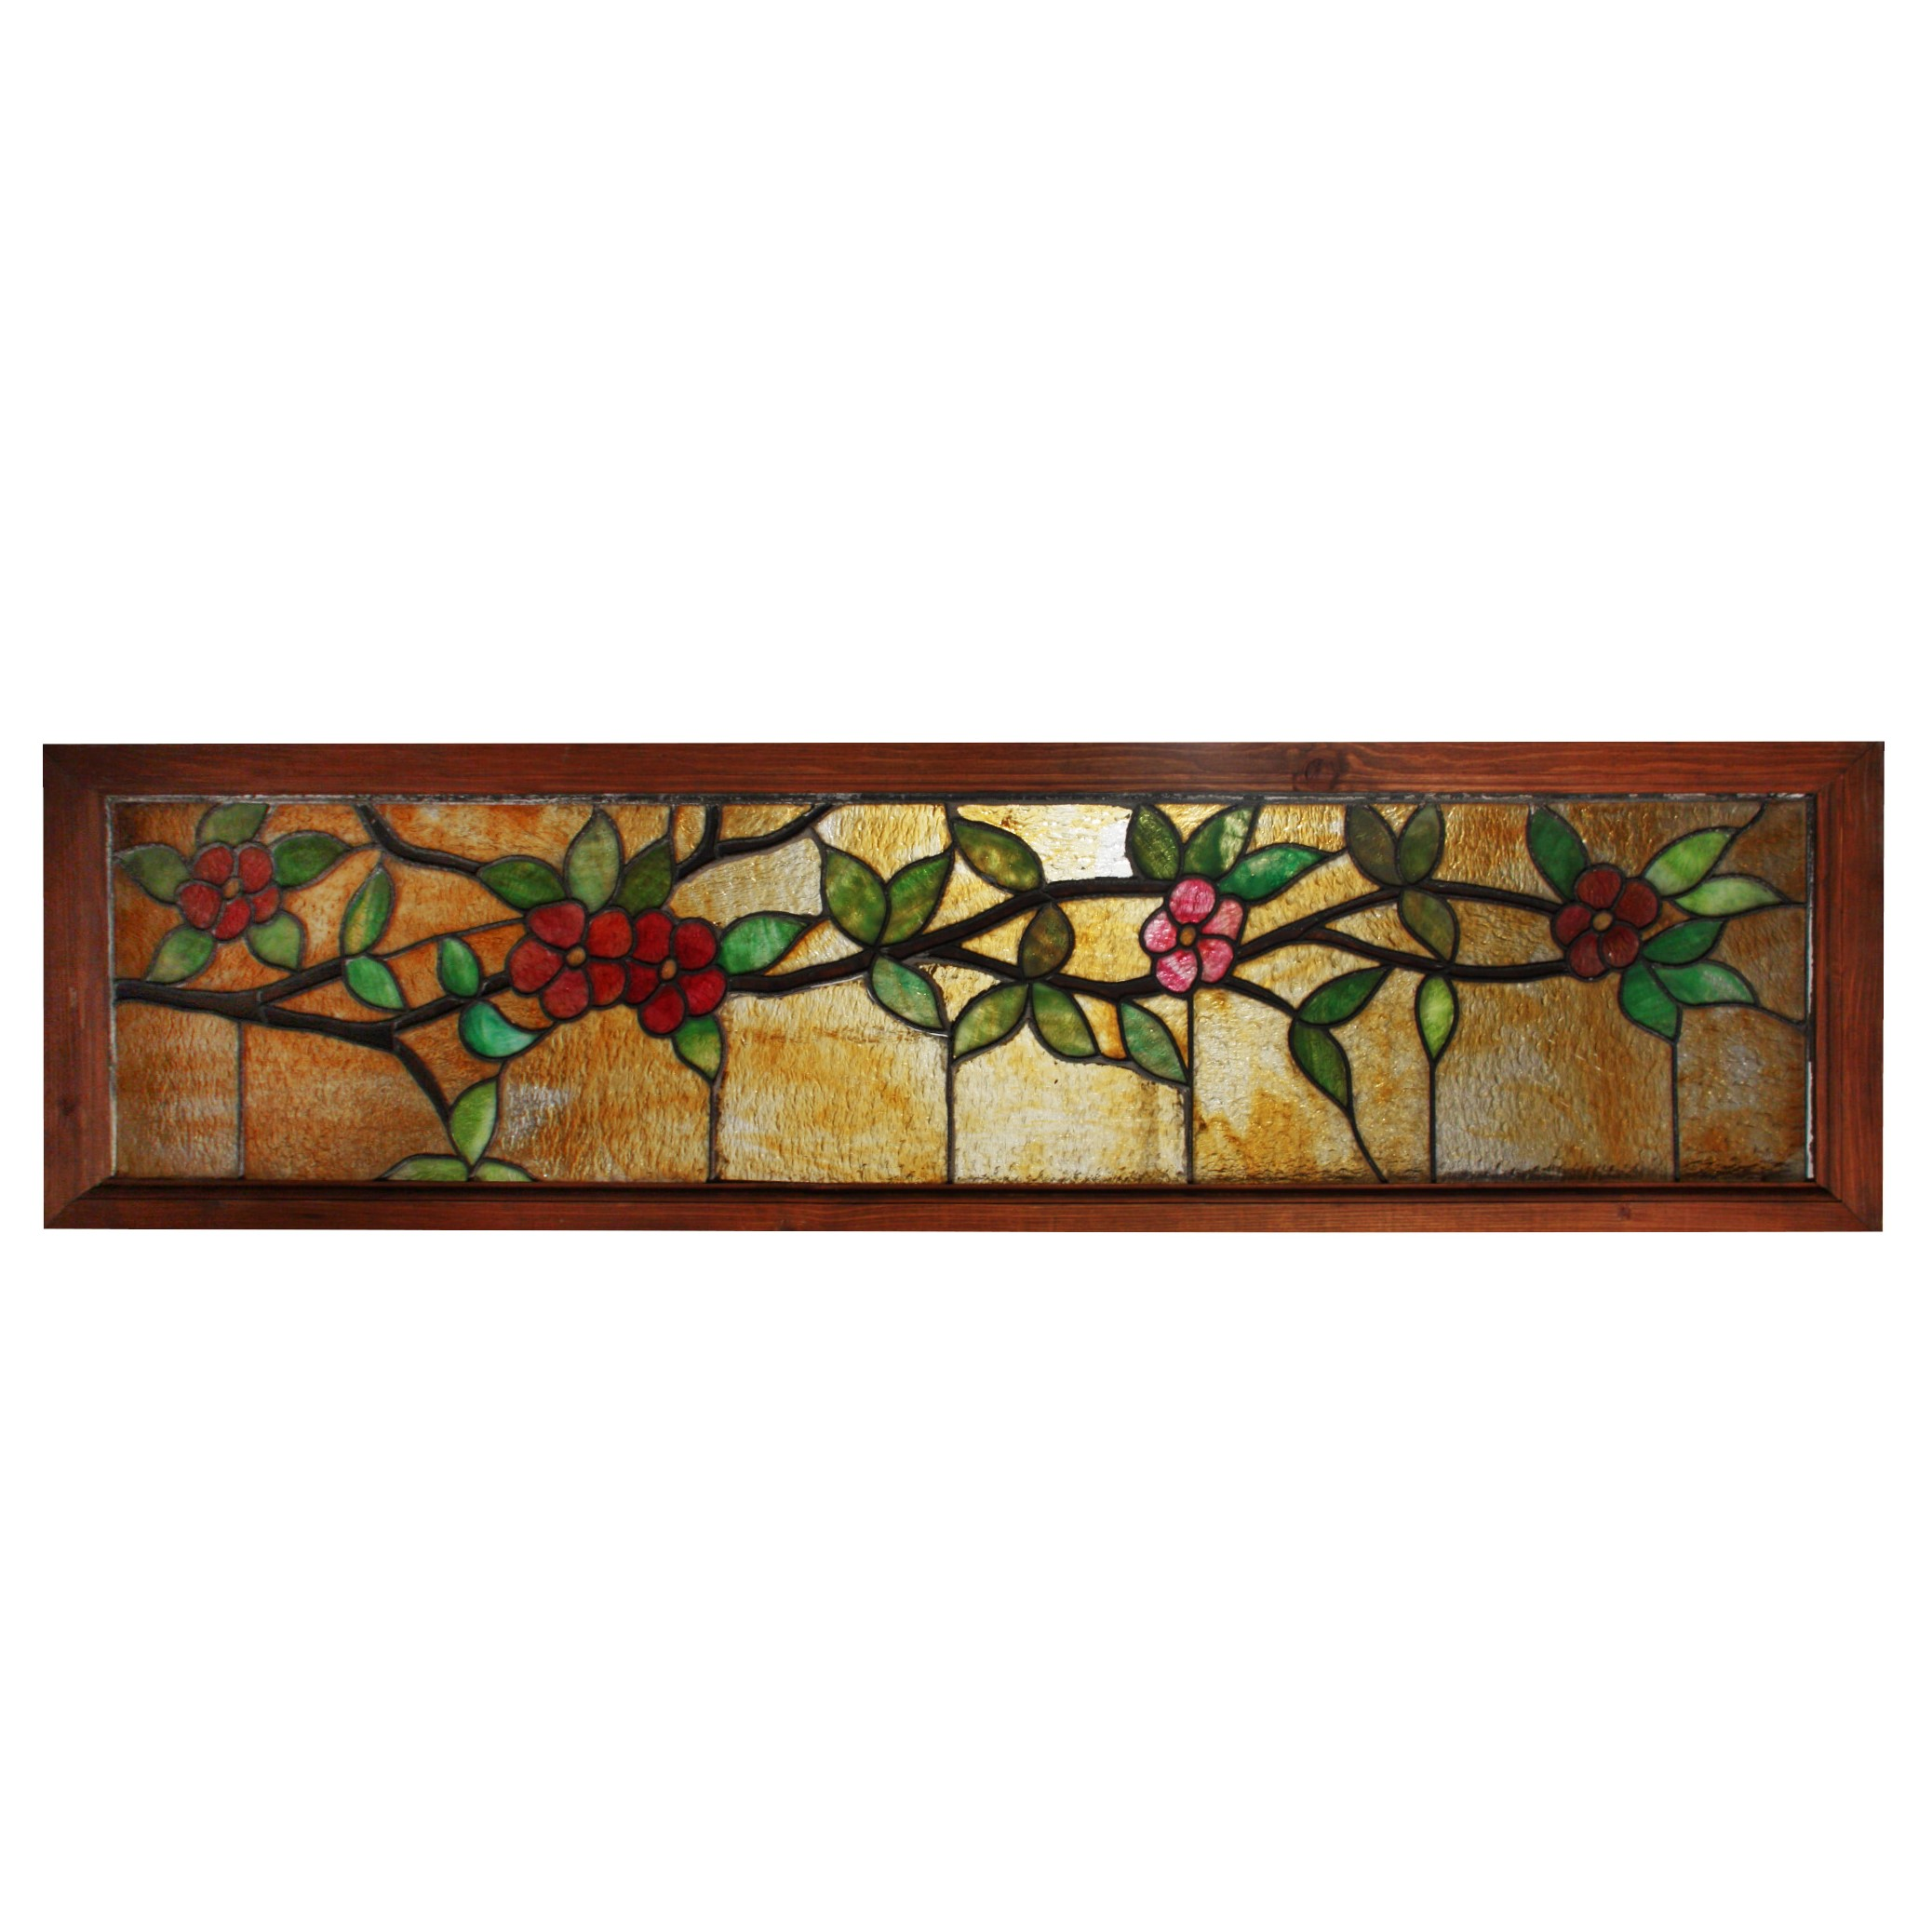 Fanciful Antique American Stained Glass Transom C 1900 S